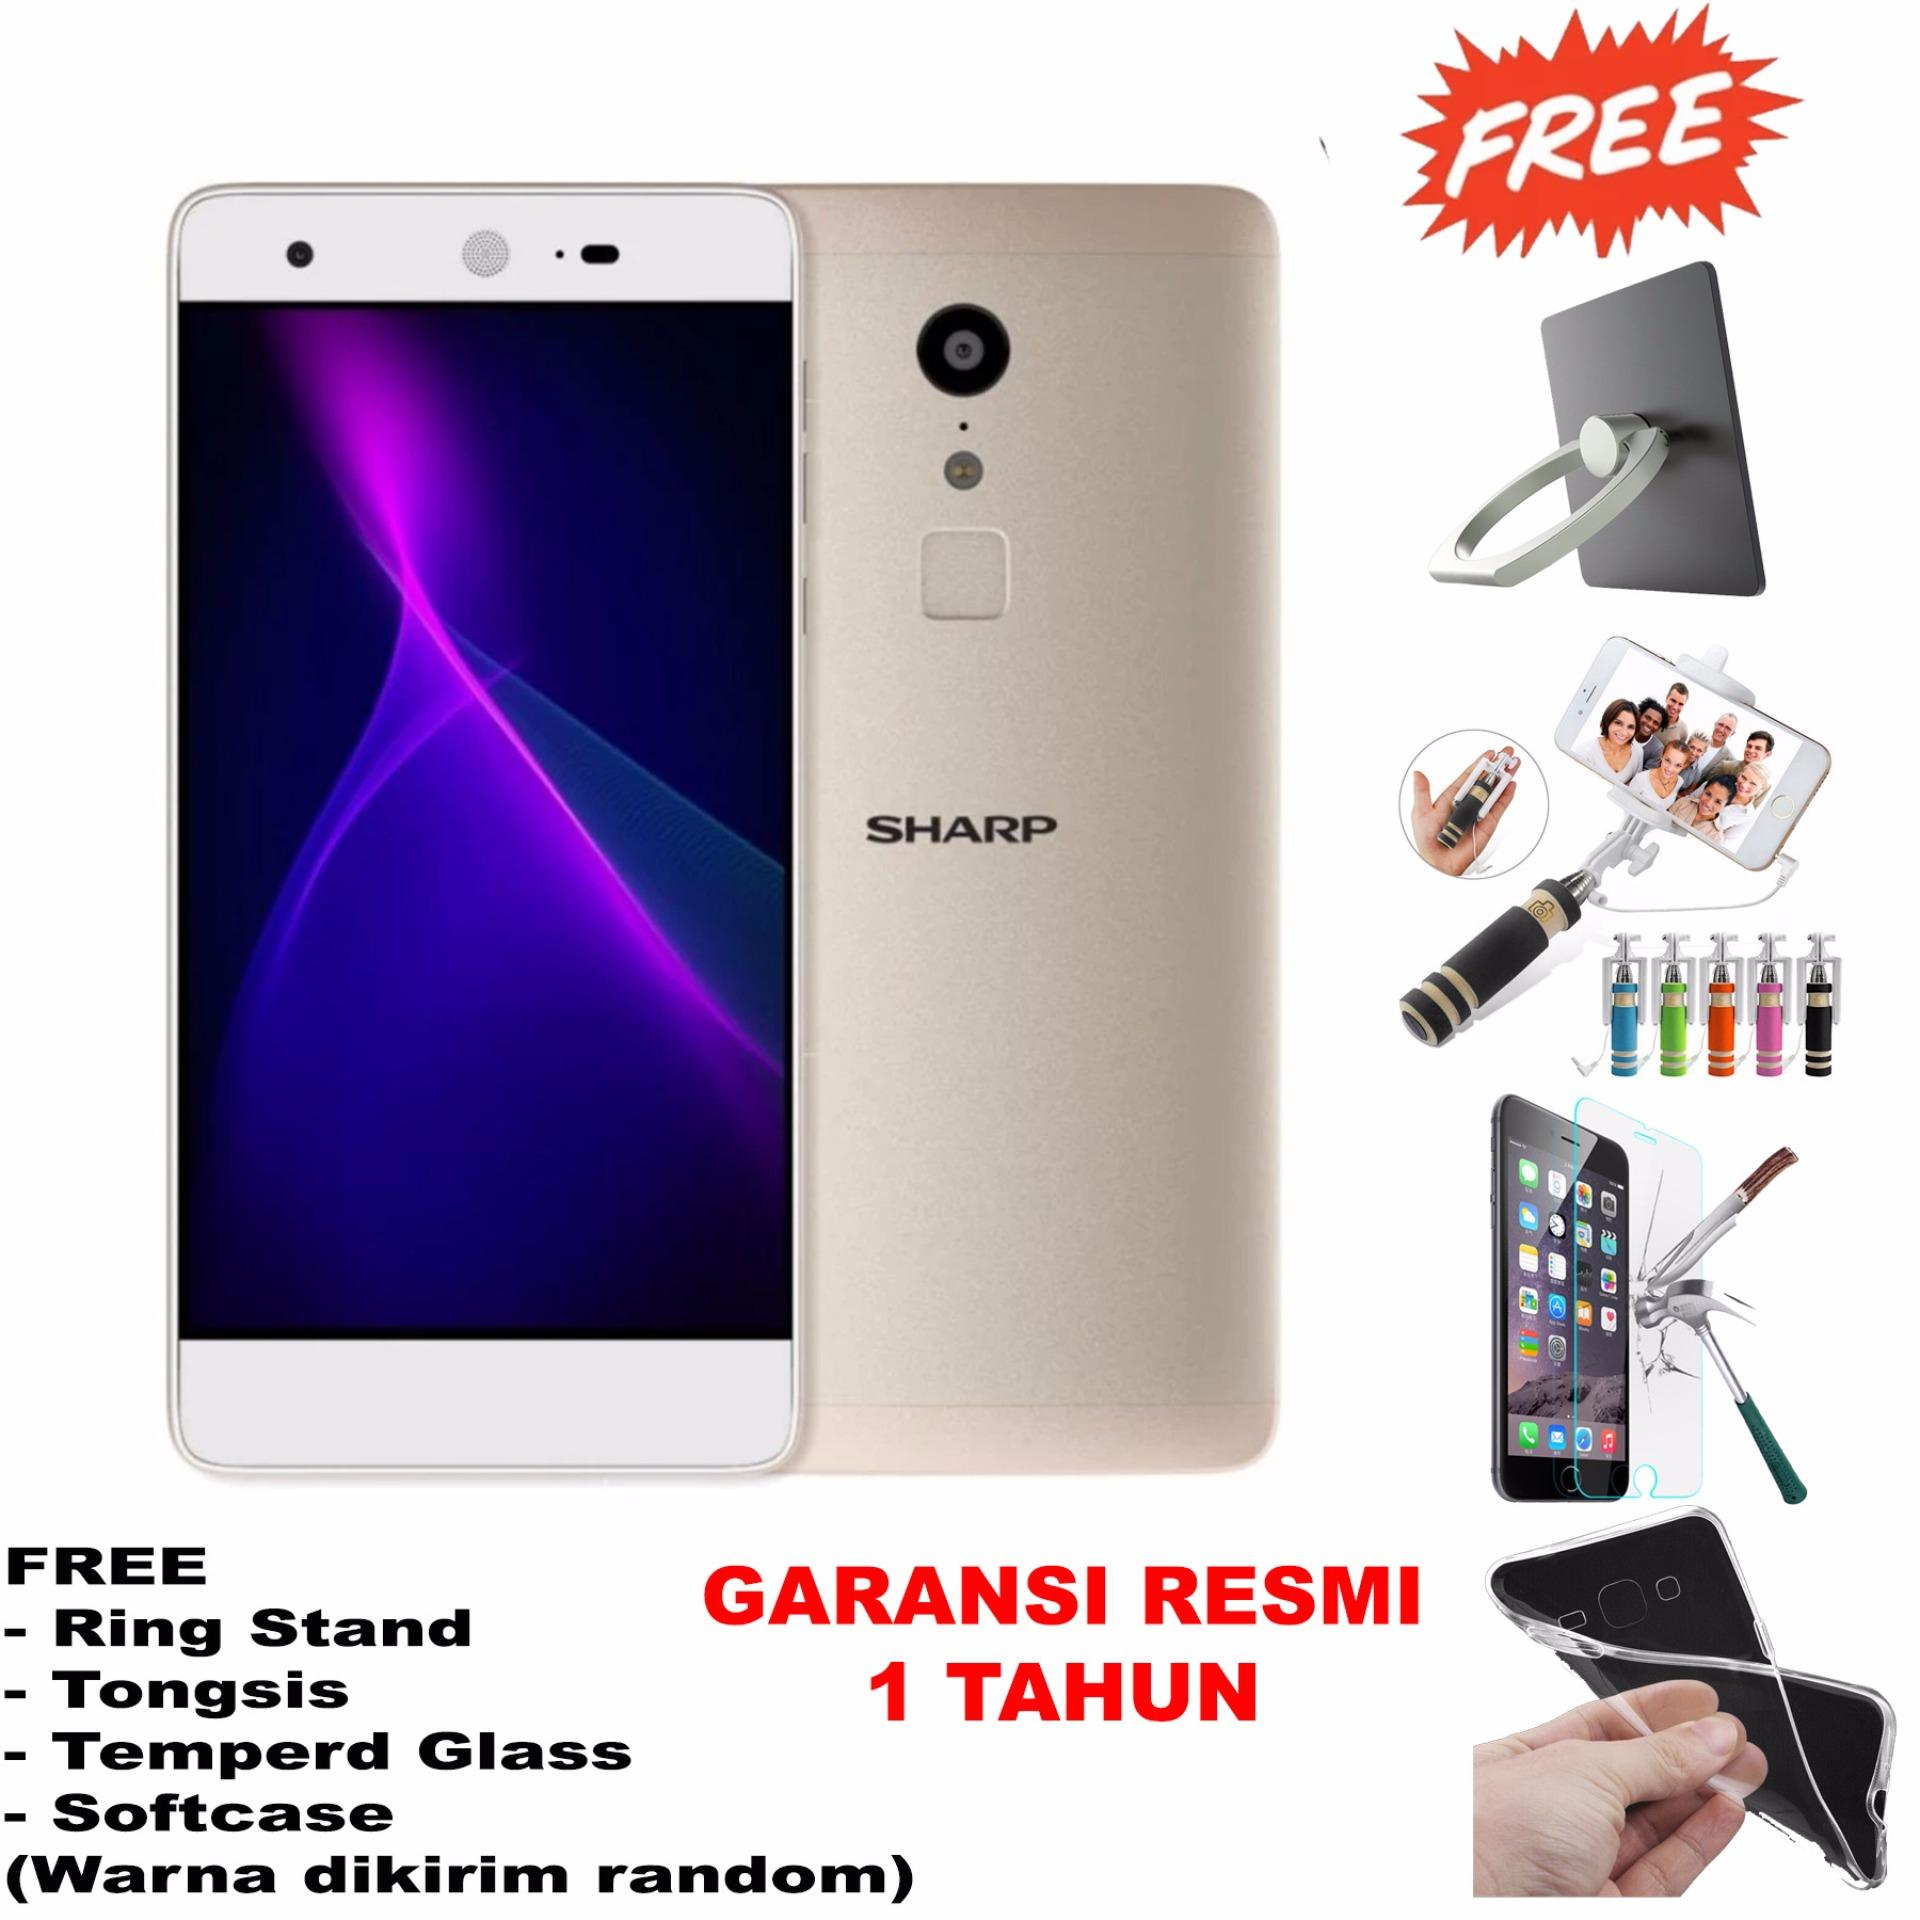 Harga Sharp Z2 Ram 4Gb Deca Core Kamera 16Mp 8Mp Free 4 Item Accessories Gold Sharp Online